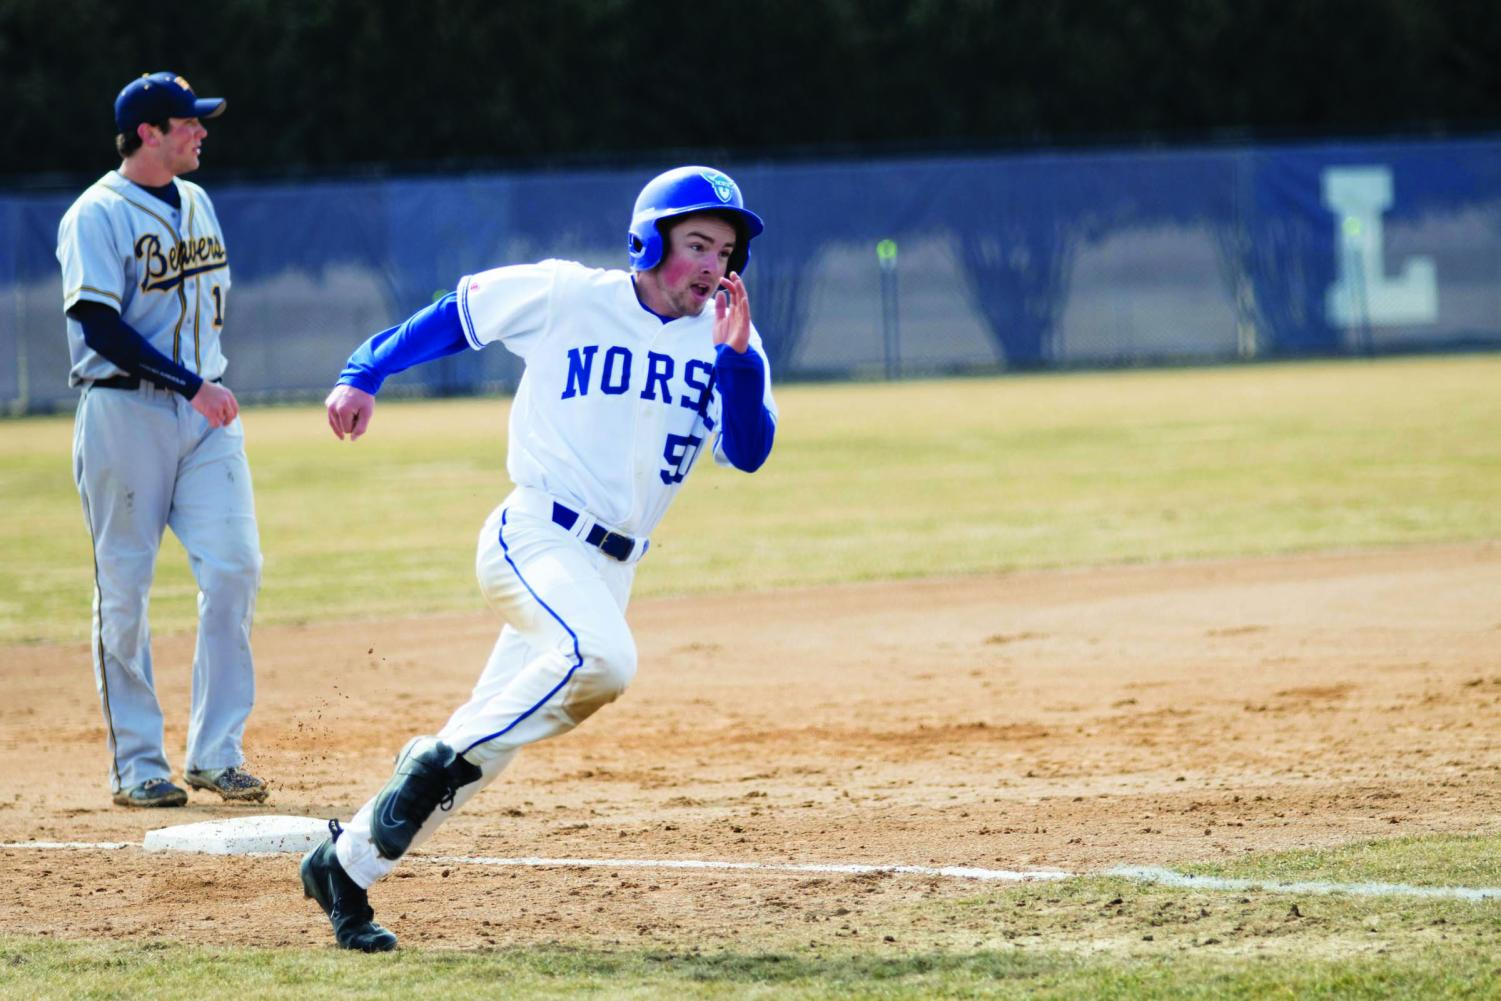 Jared Swanson ('21) runs around the bases after a hit earlier in the season.